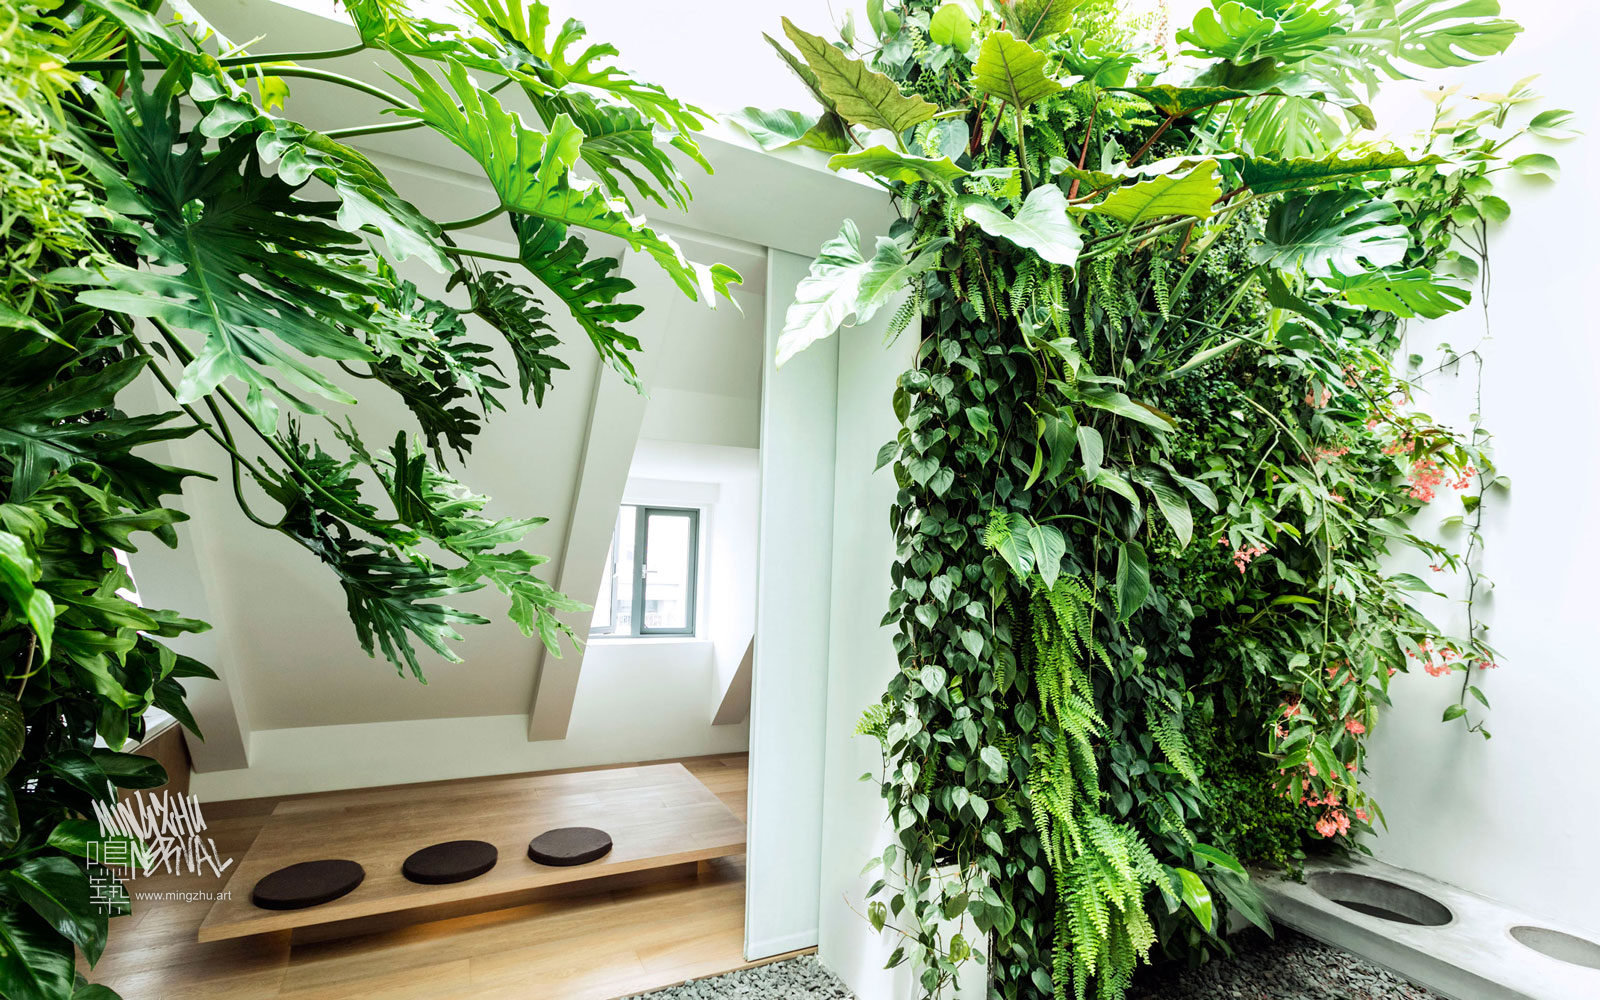 At Mingzhu Nerval, we thrive at creating the most beautiful vertical gardens in the world. For this private apartment, we created a fancy living wall design – Shanghai, 2013.